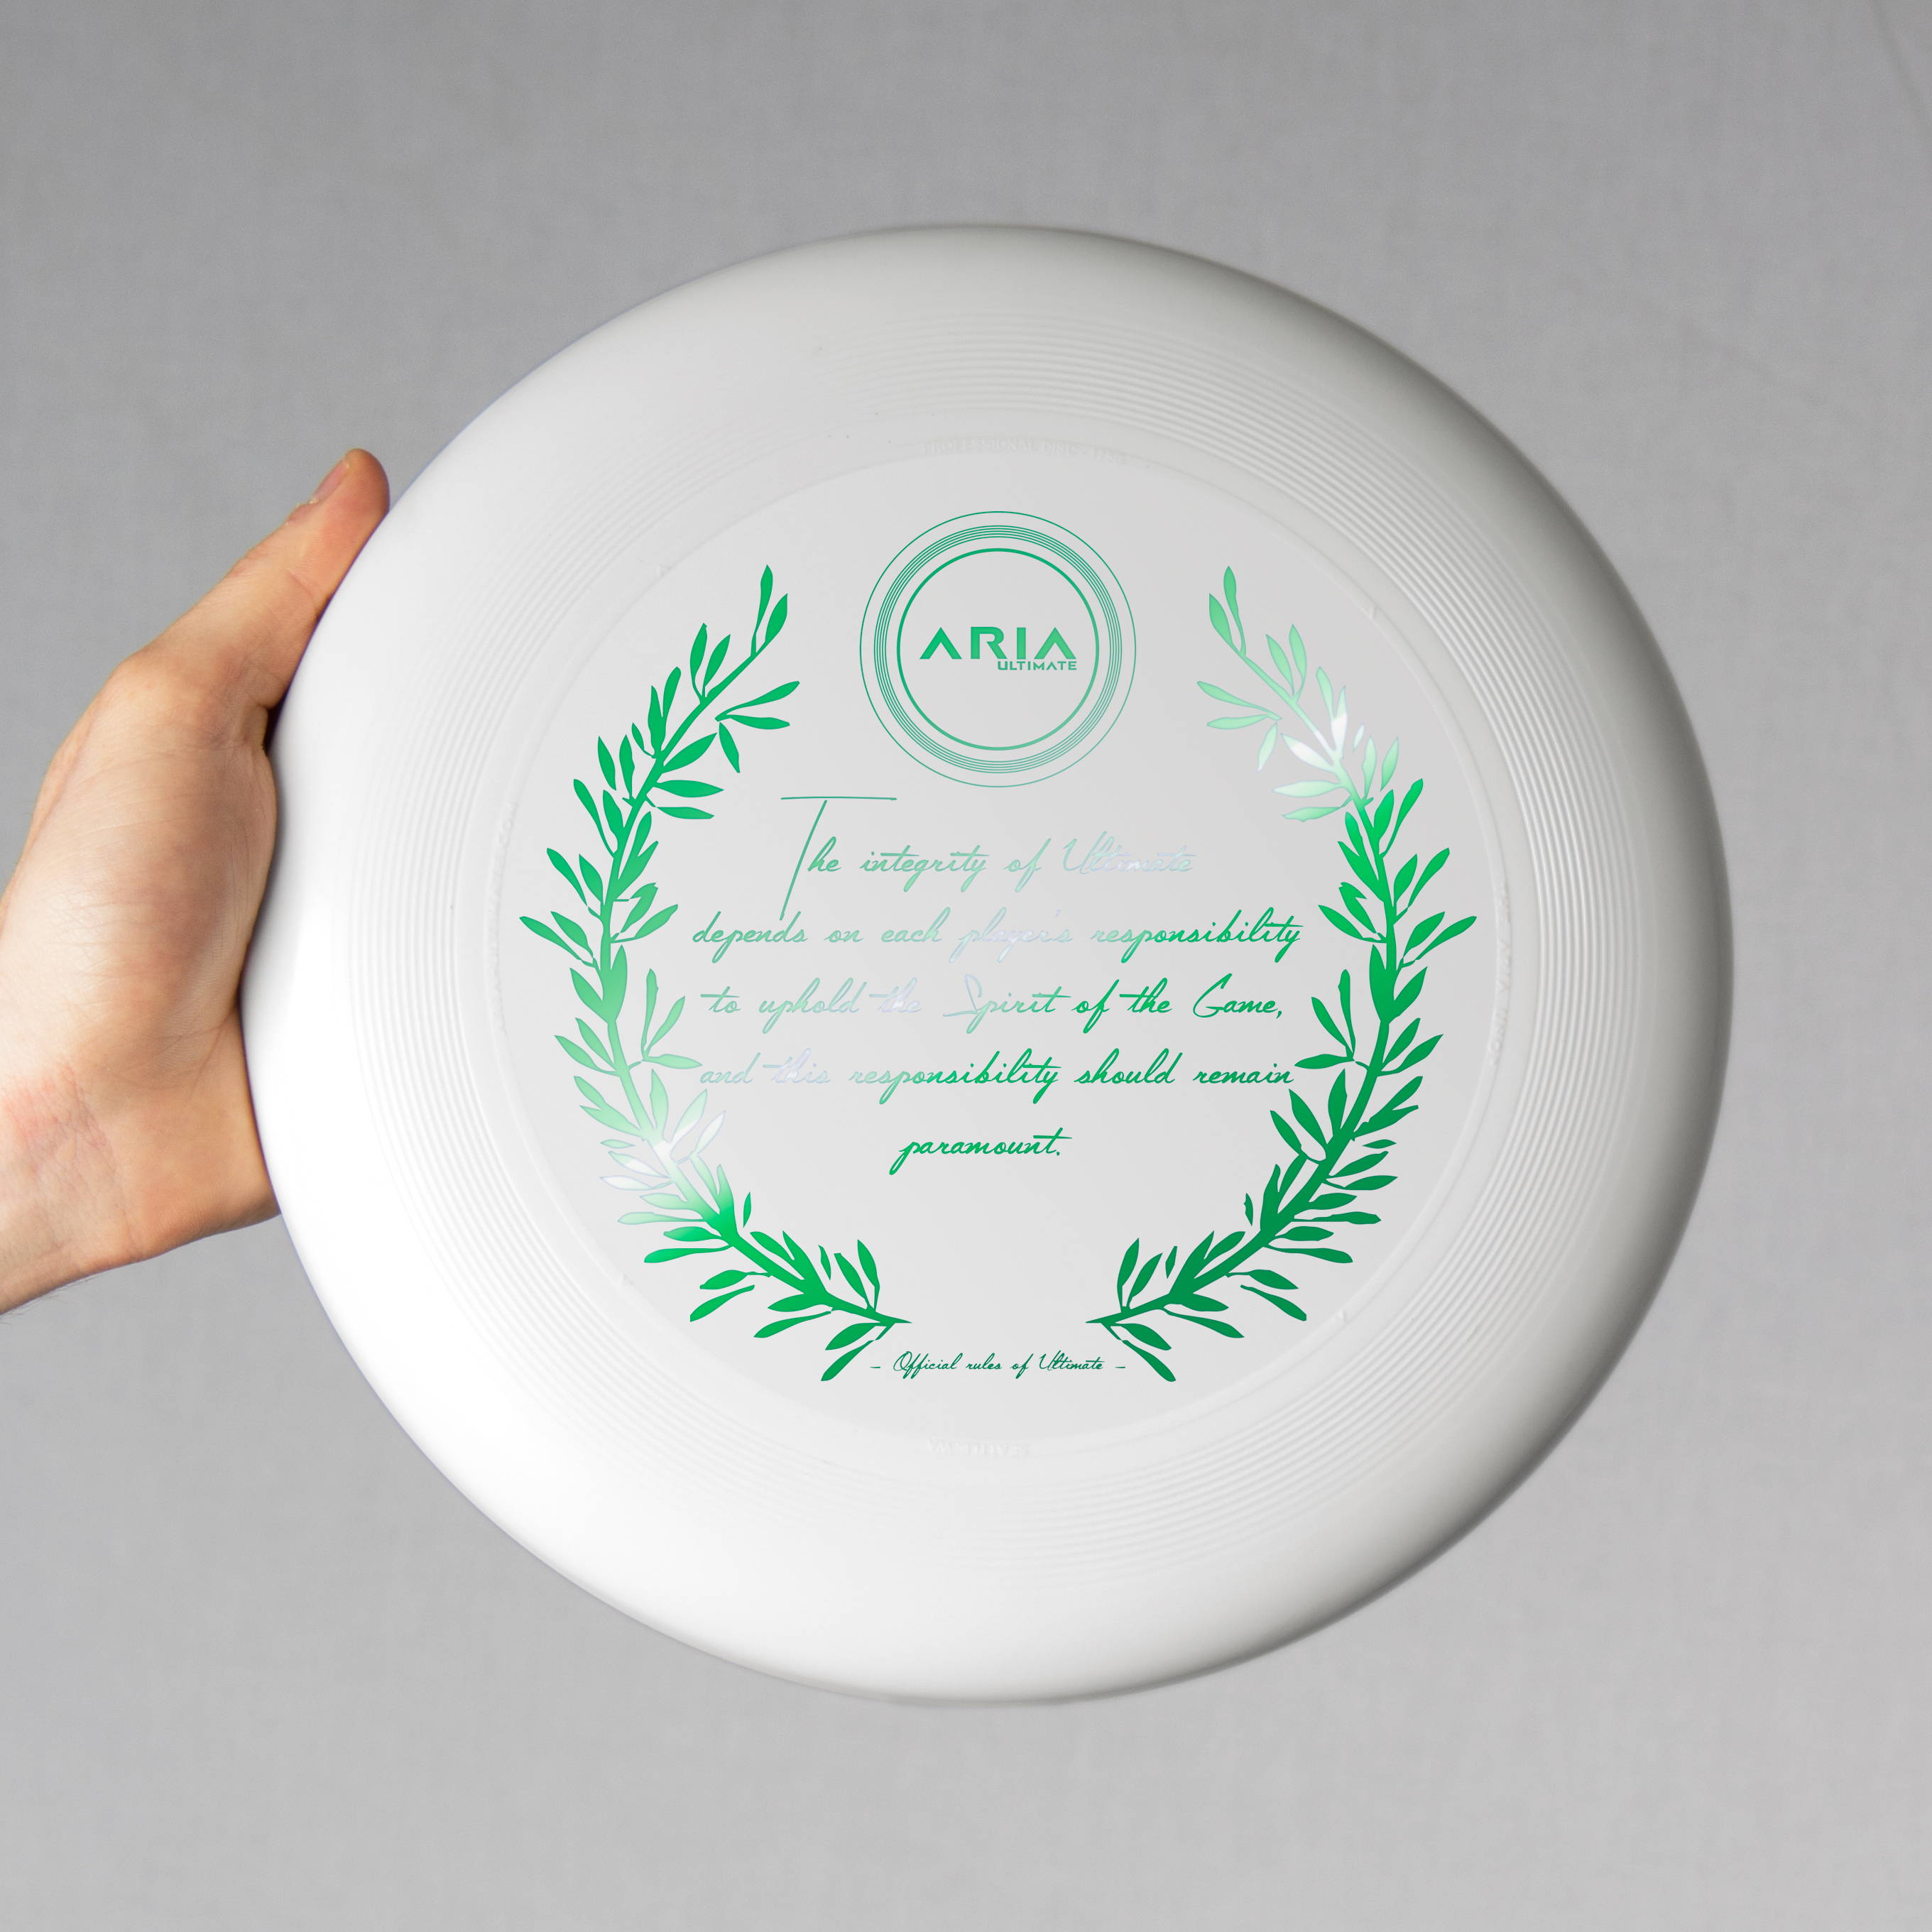 ARIA professional official ultimate flying disc for the sport commonly known as 'ultimate frisbee' sotg spirit of the game disc design